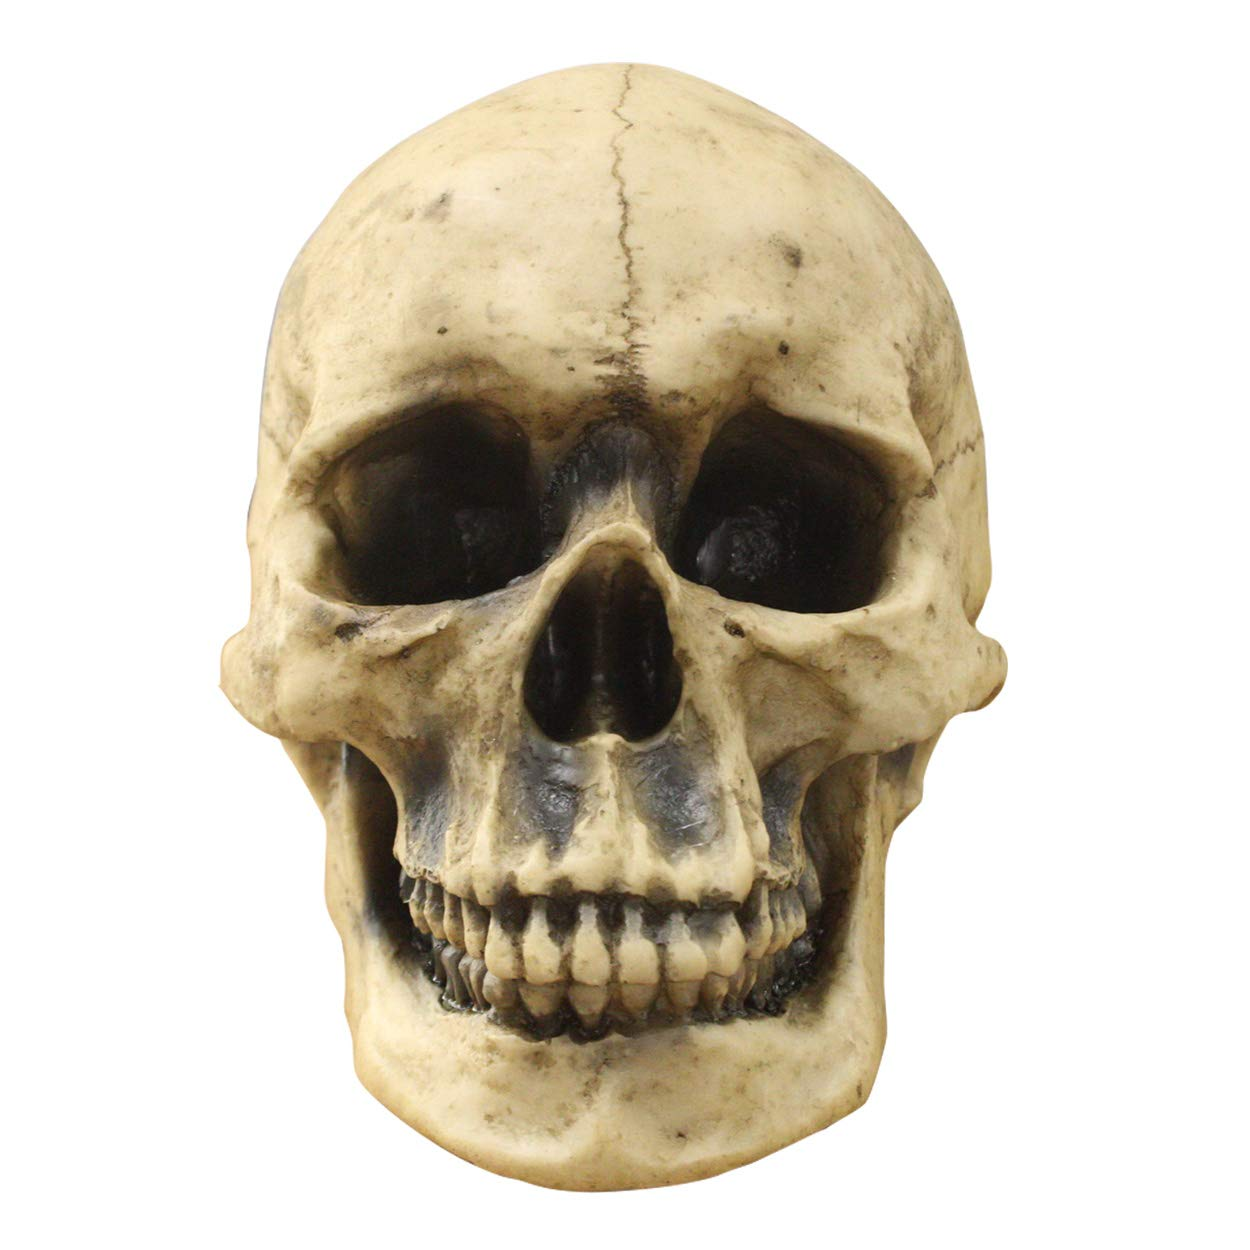 Wall Charmers Life Size Human Skull - 8.5'' Realistic Faux Human Anatomy - Table Top Skeleton Head Home Decor by Wall Charmers